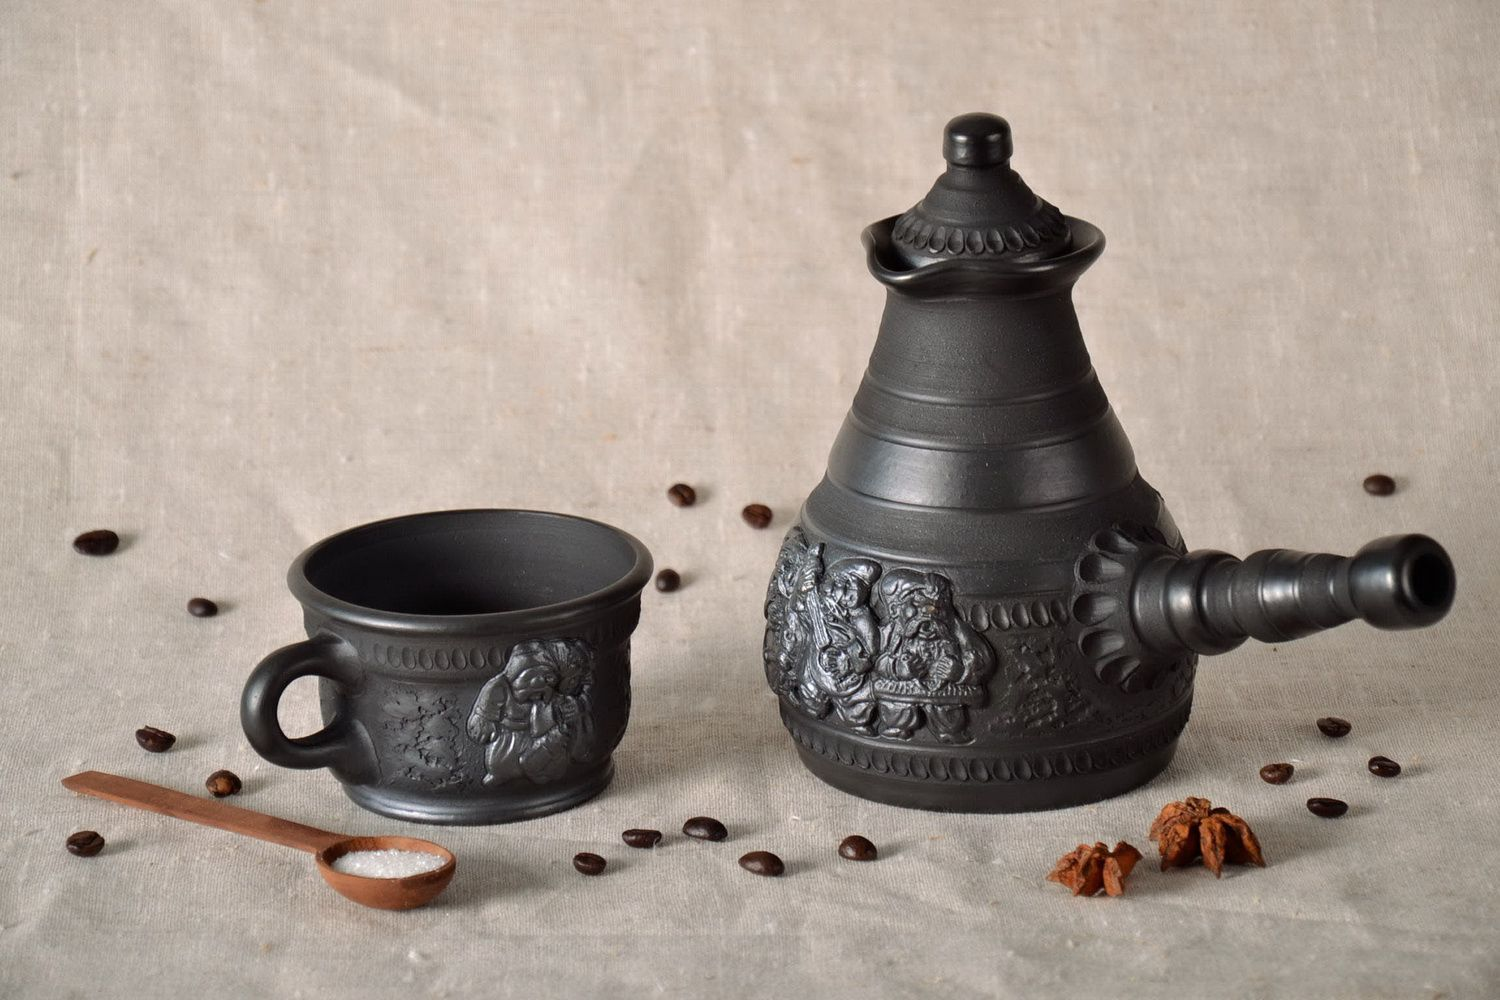 tea pots and coffee pots Ceramic turk for coffee - MADEheart.com